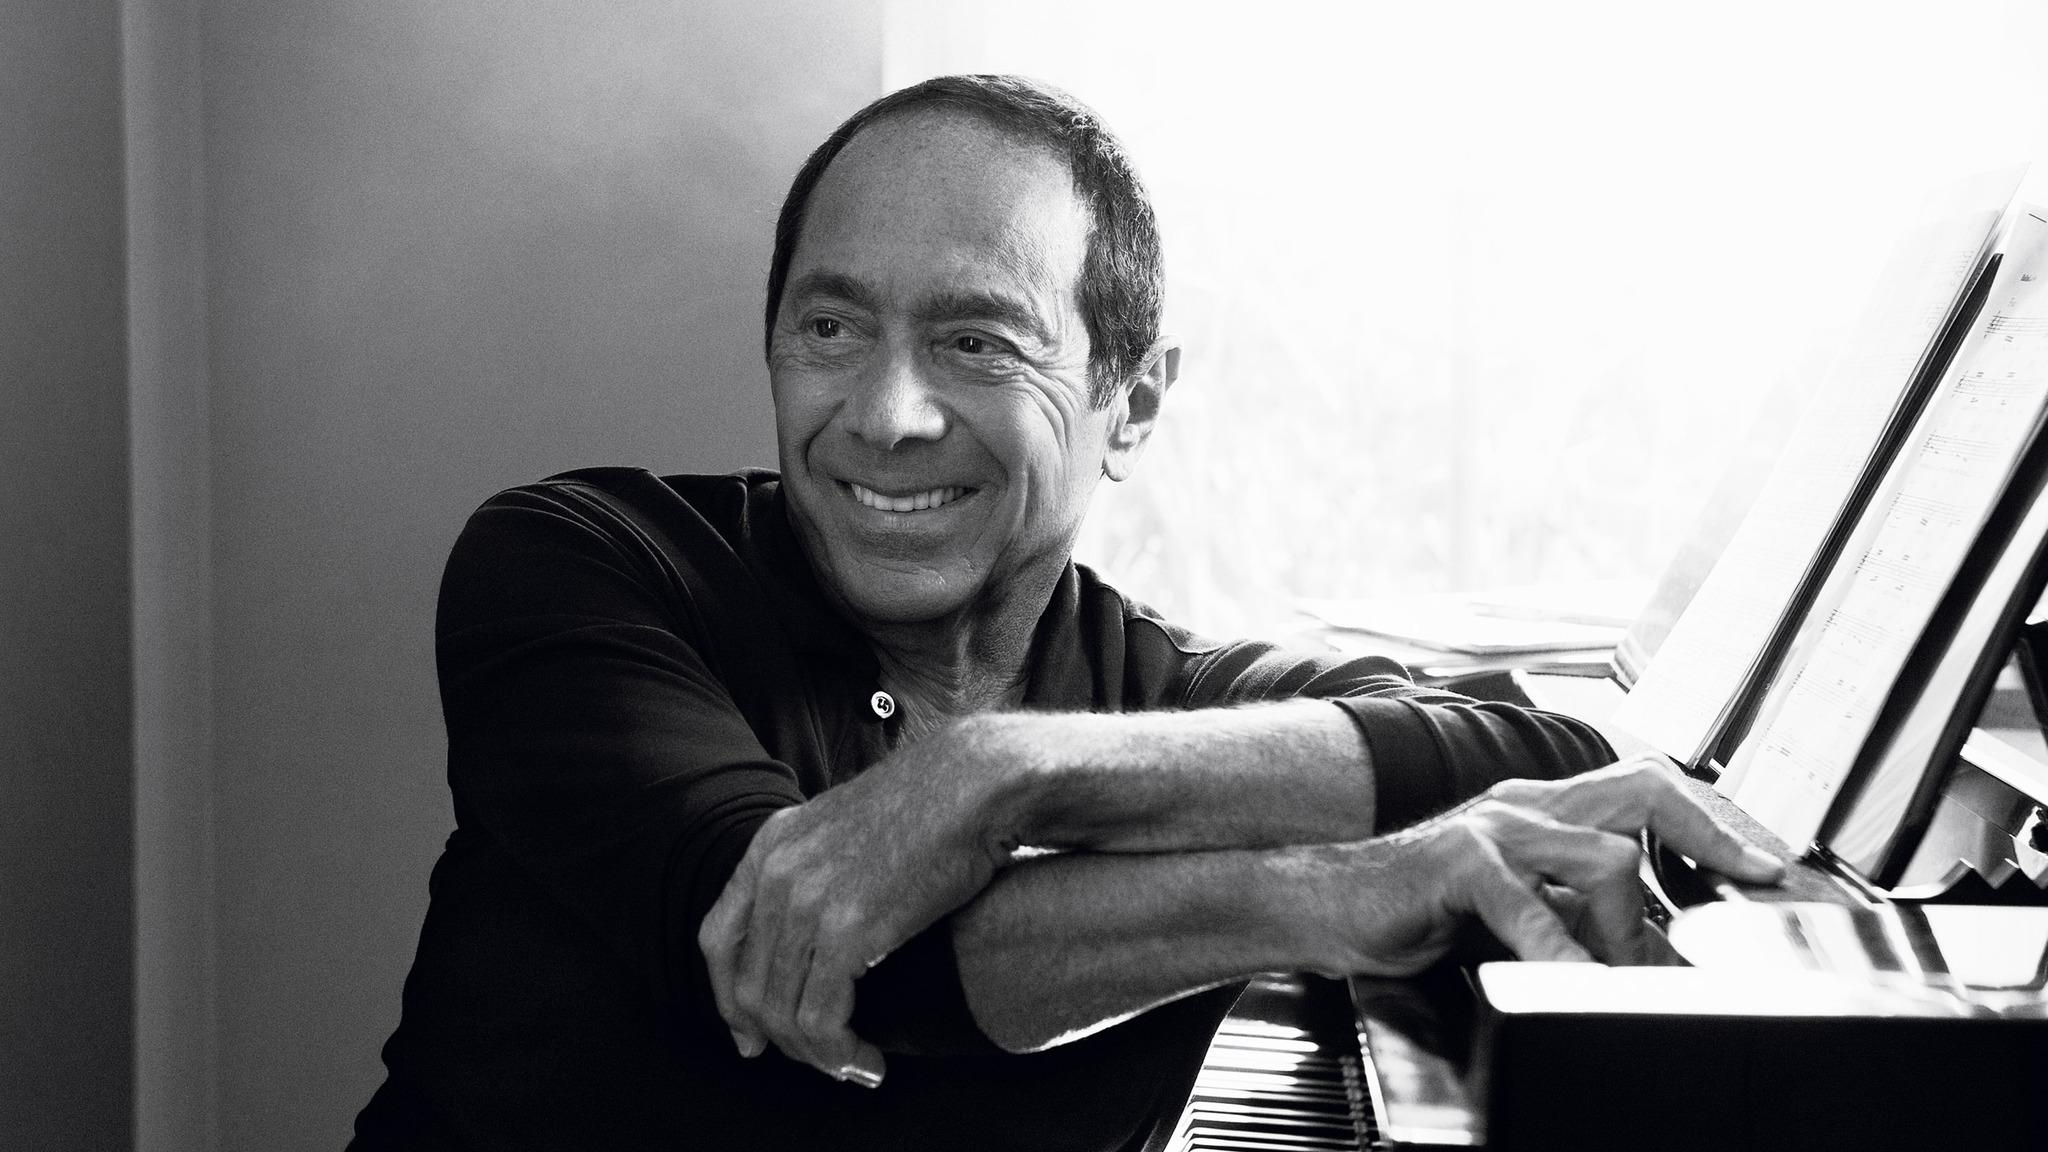 Paul Anka at Ovations Live! at Wild Horse Pass